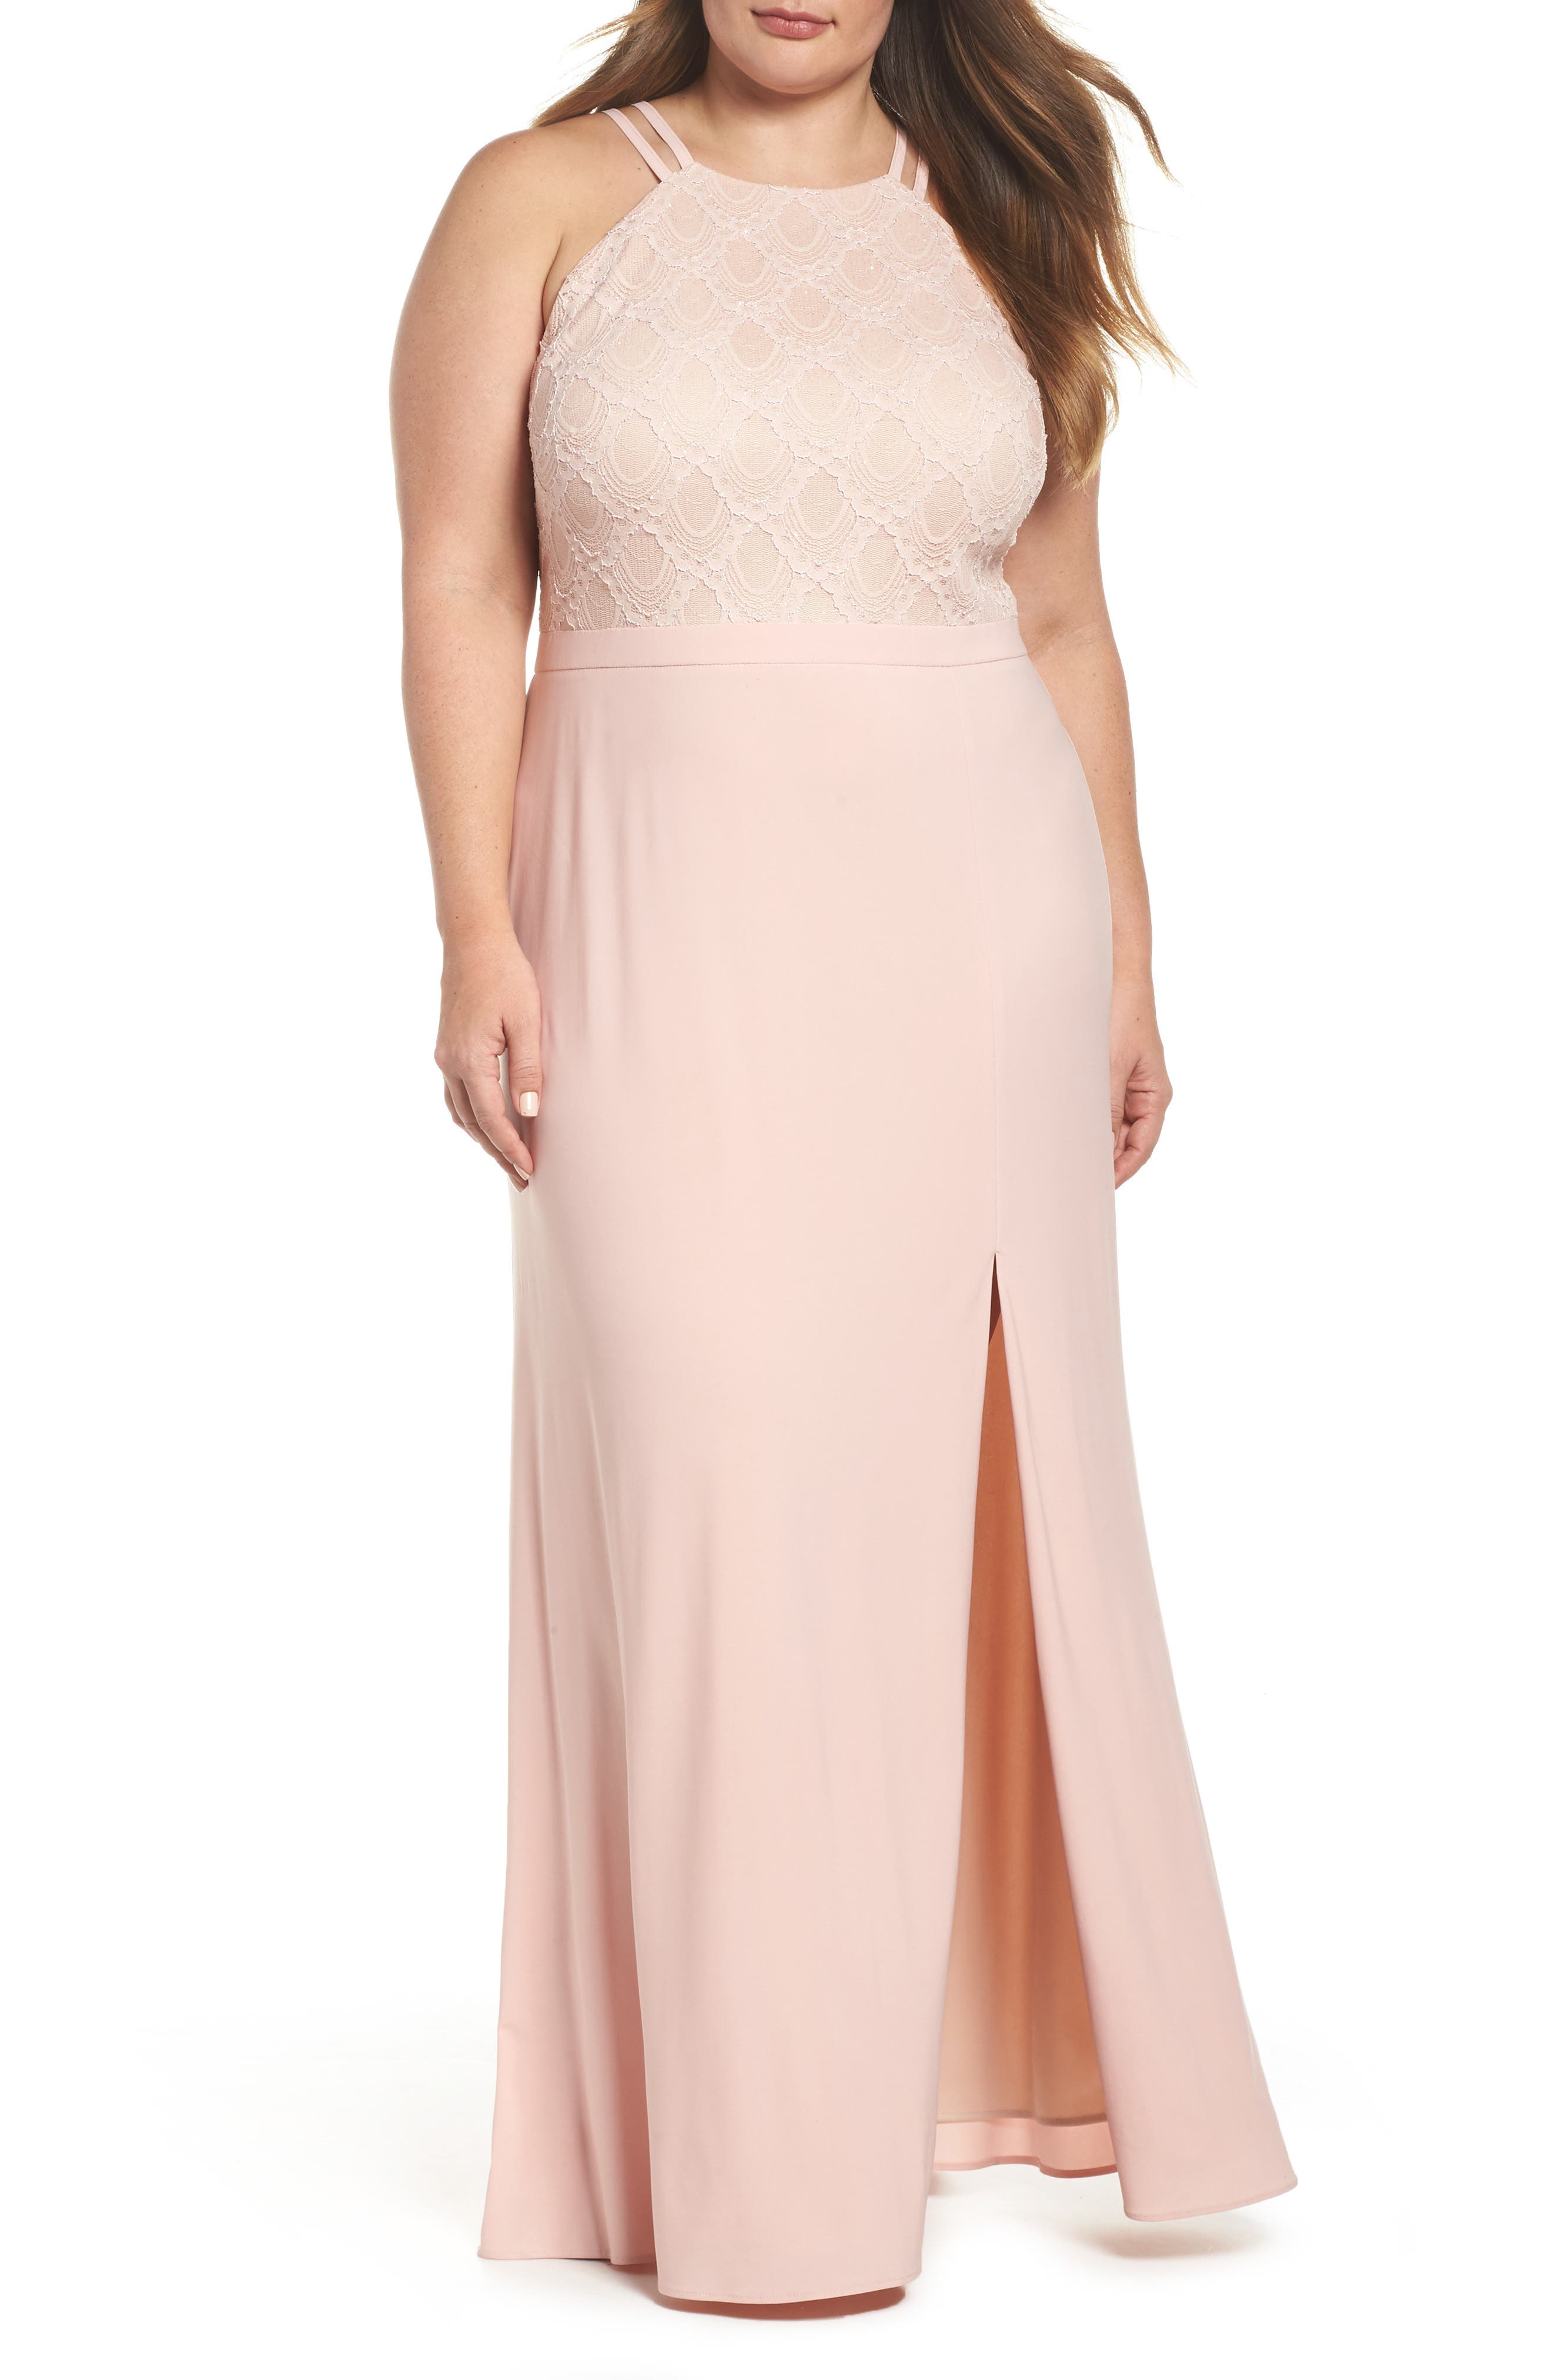 Lace Bodice Gown,                         Main,                         color, BLUSH/ NUDE